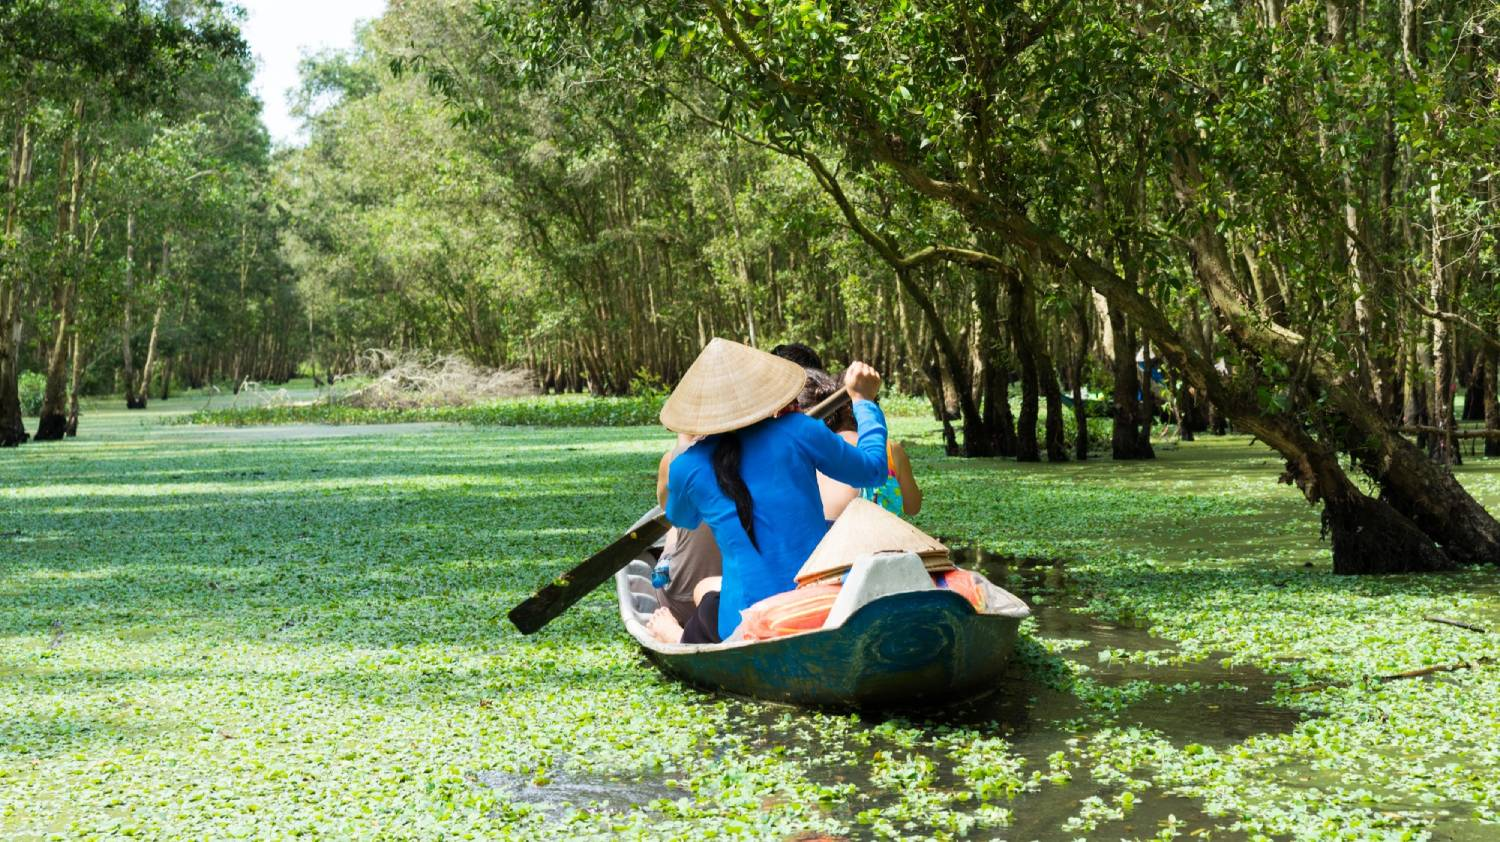 The Mekong Delta - The Best Places To Visit In Vietnam